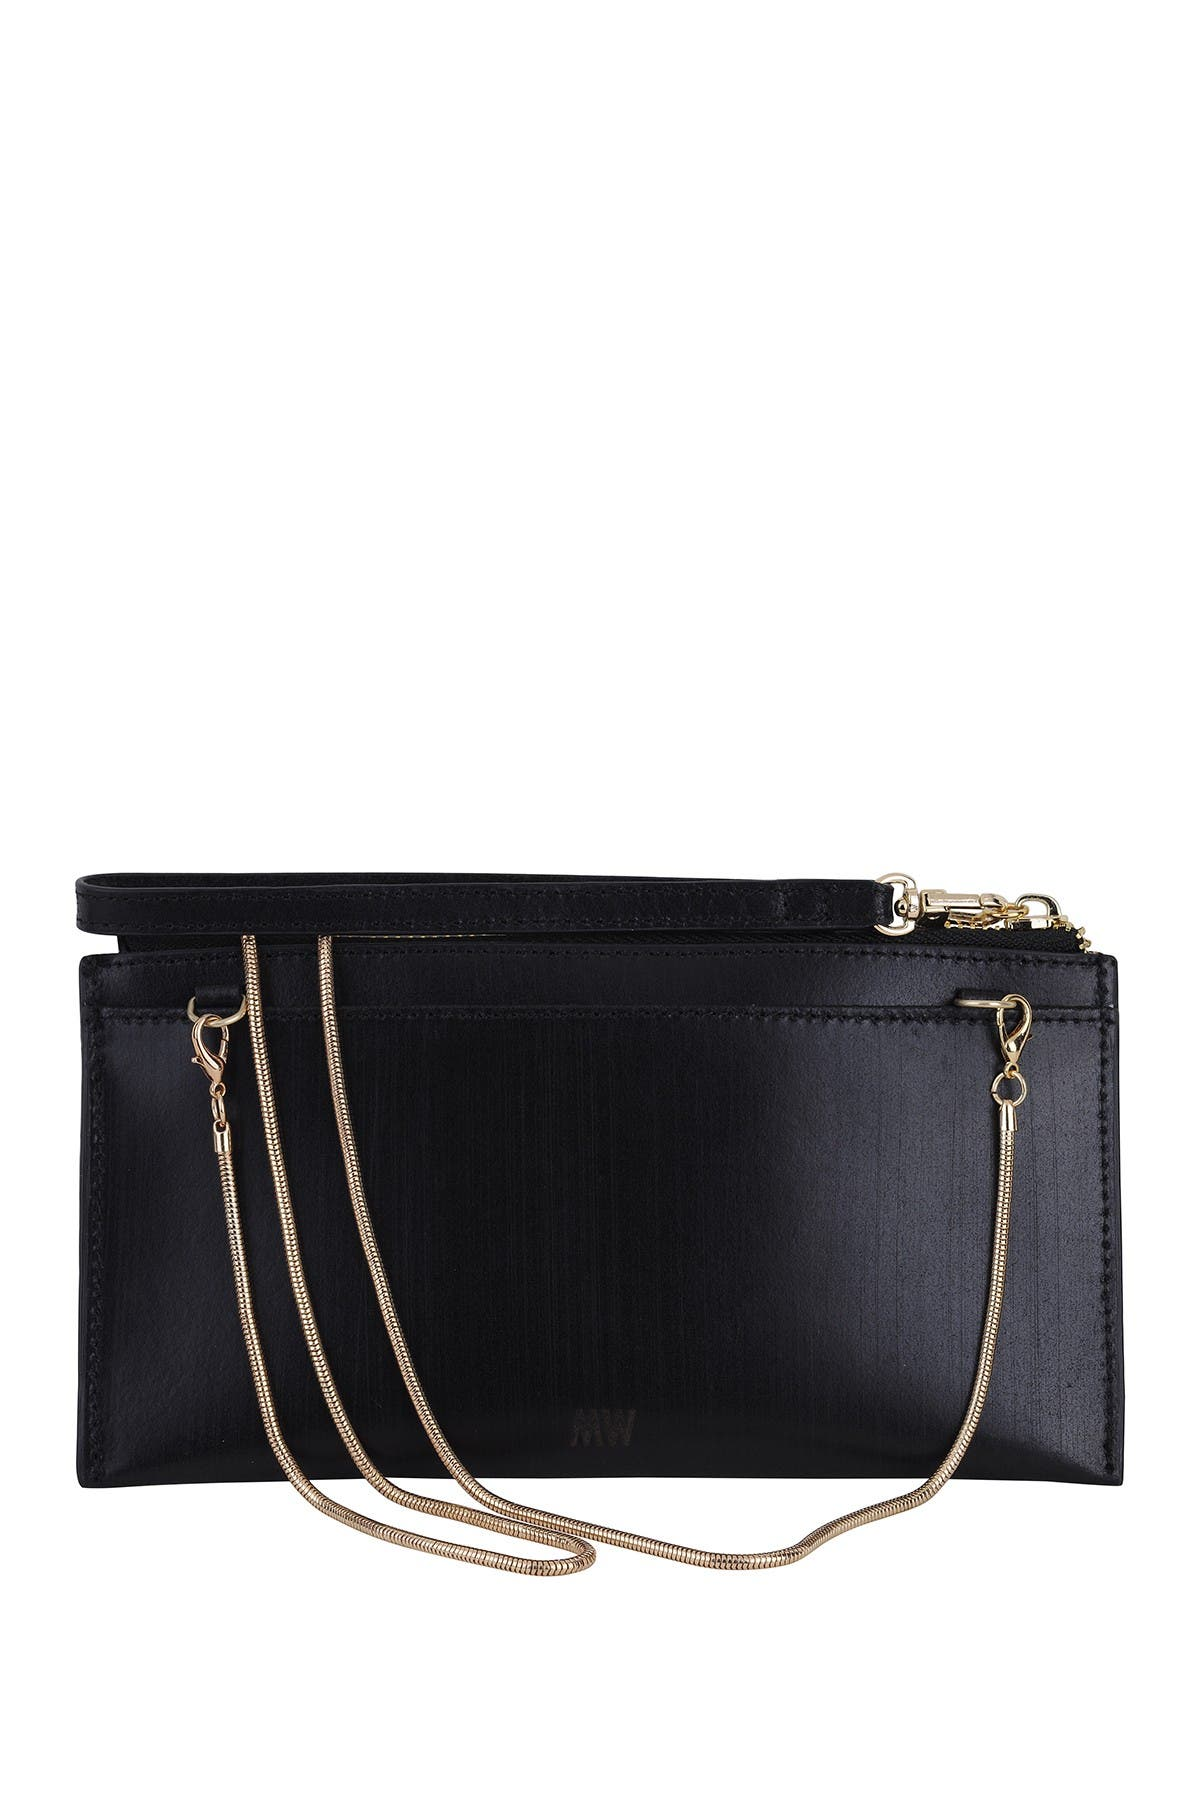 Image of Most Wanted USA Leather Convertible Crossbody Bag